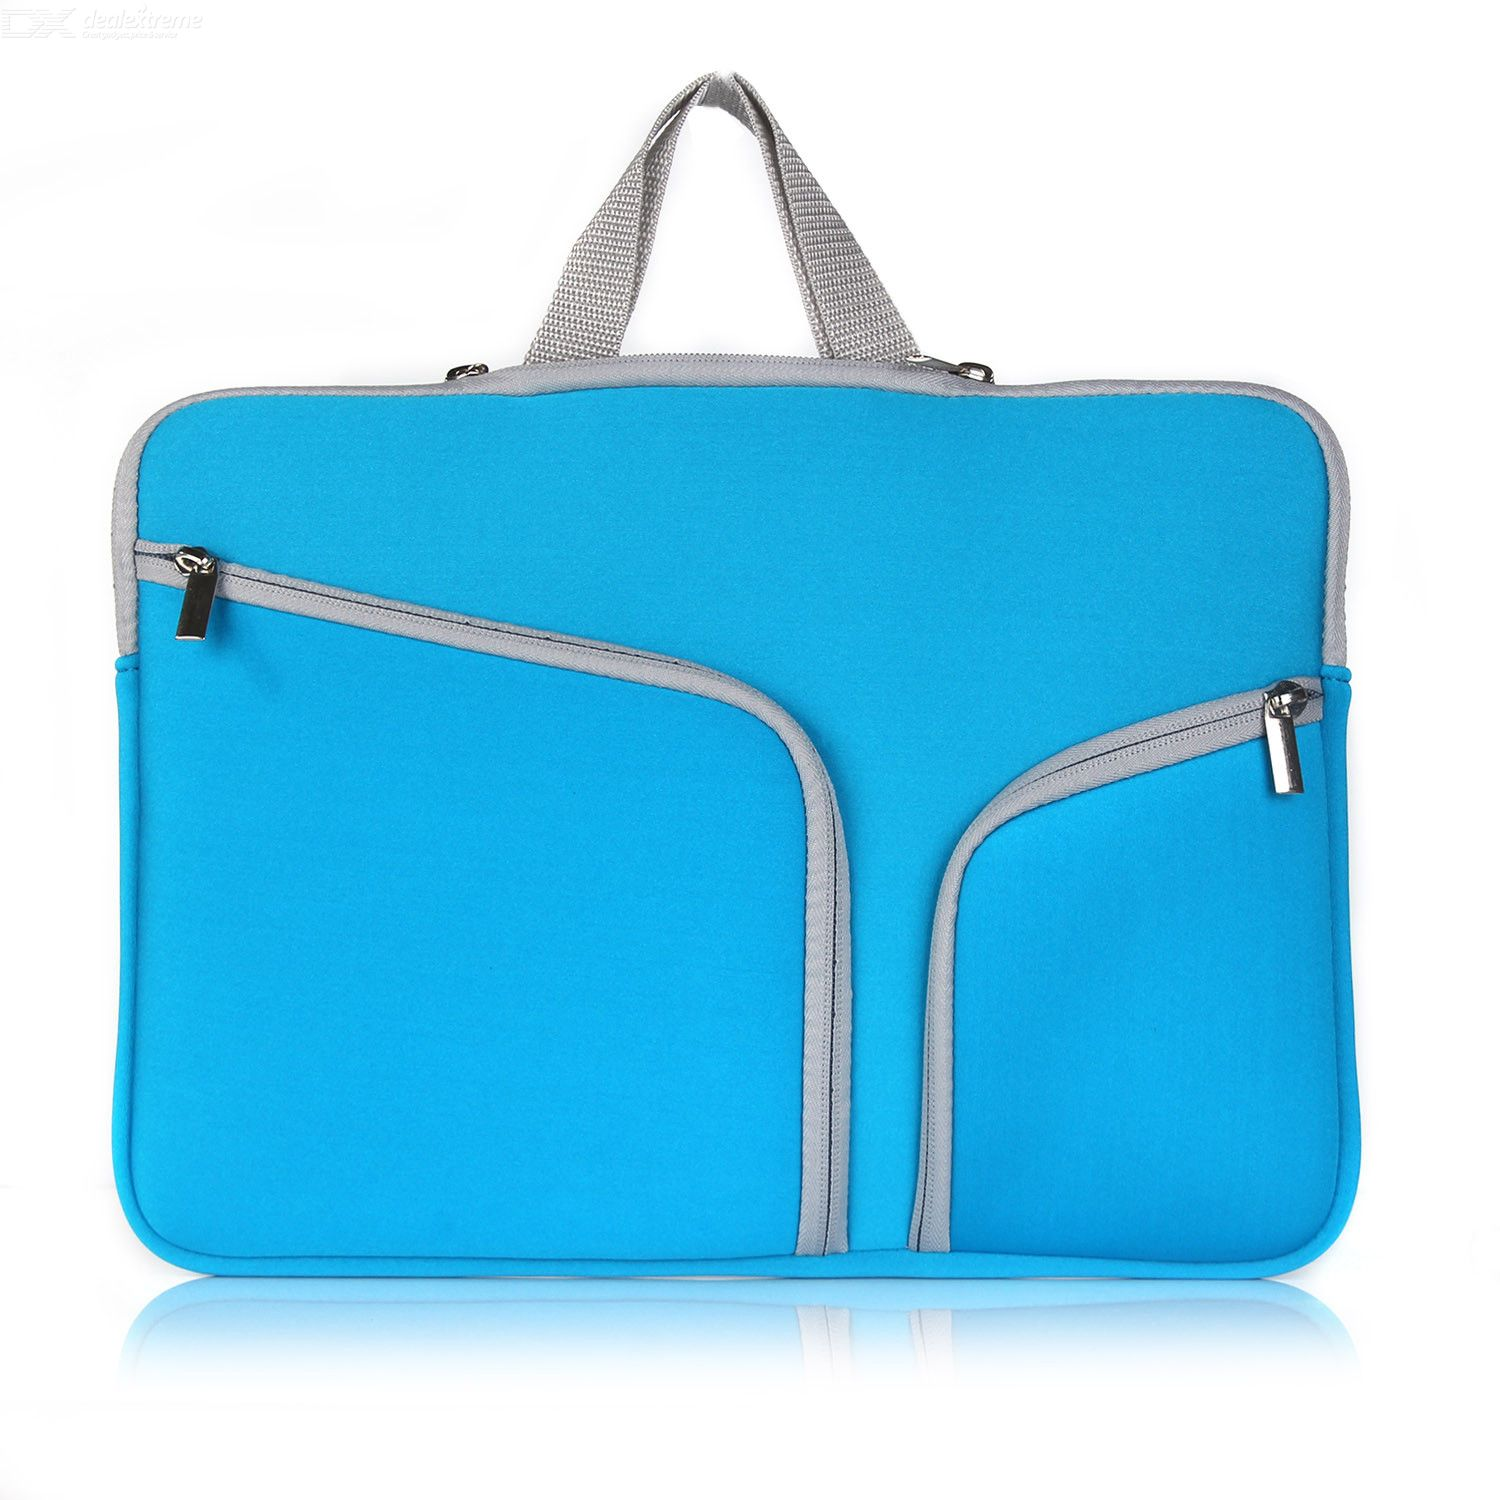 Dayspirit-Double-Zipper-Laptop-Sleeve-Bag-Case-For-Macbook-Air-116